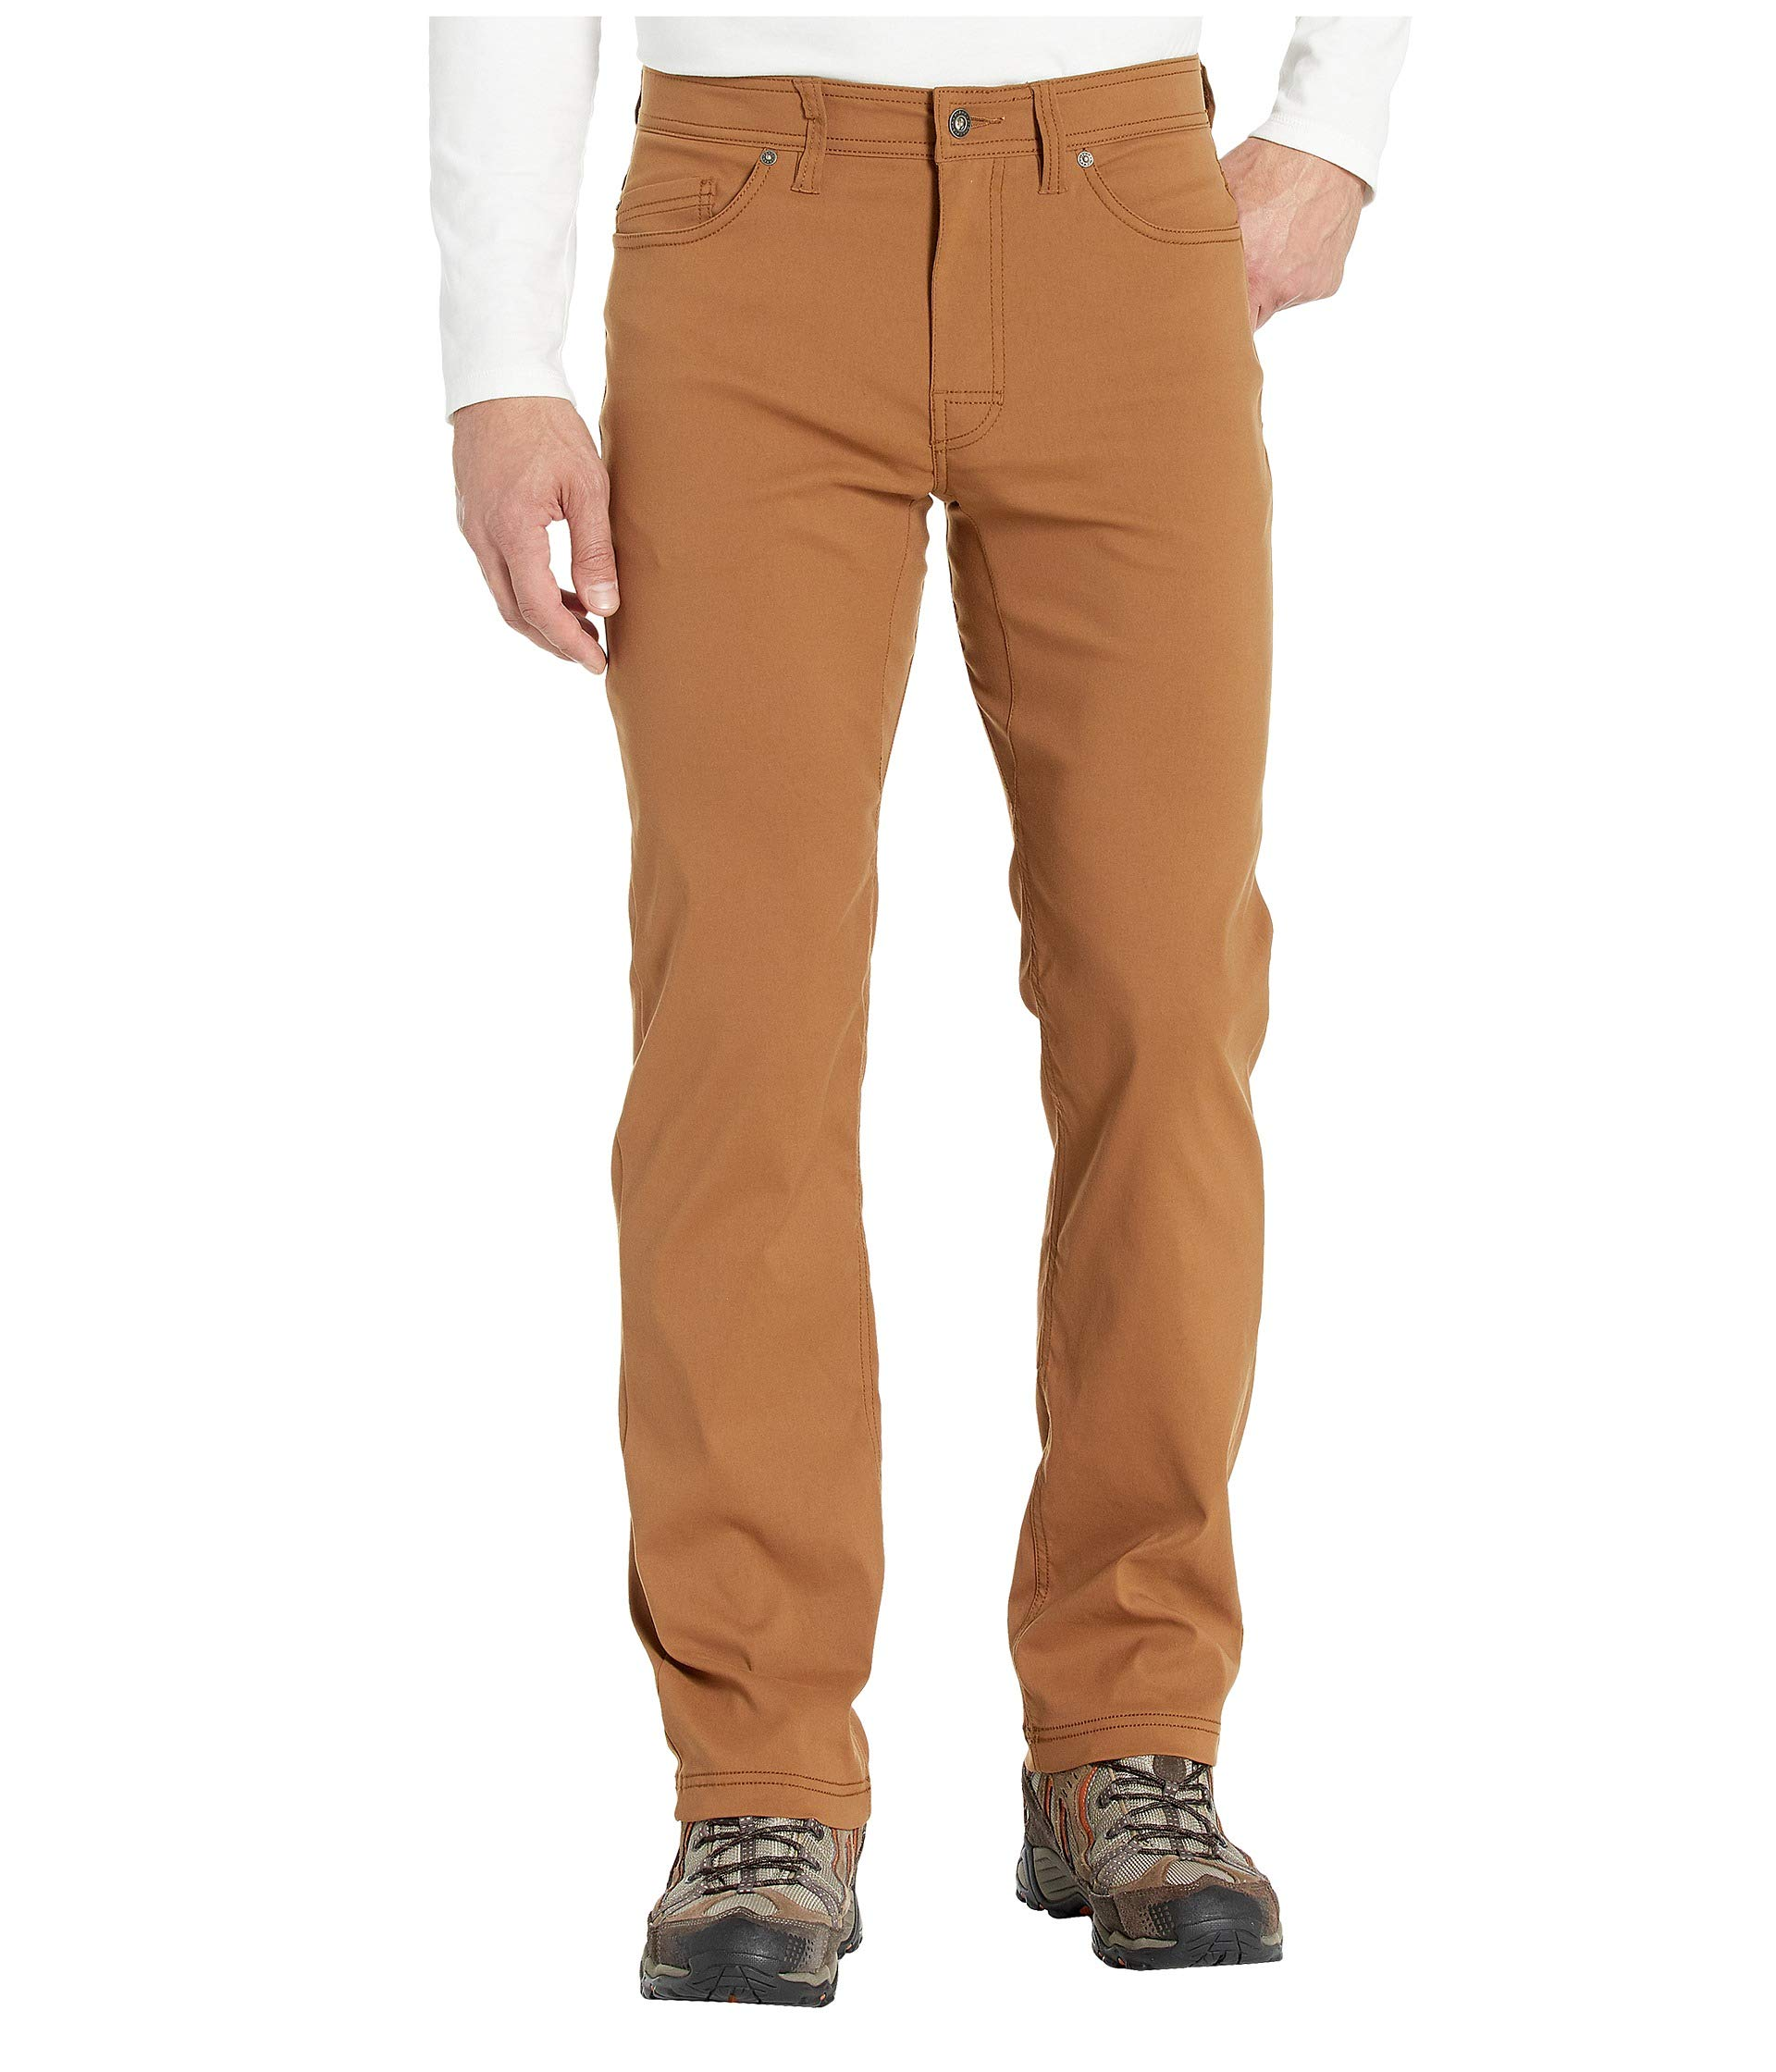 prAna - Men's Brion Lightweight, Breathable, Wrinkle-Resistant Stretch Pants for Hiking and Everyday Wear, 34'' Inseam, Sepia, 35 by prAna